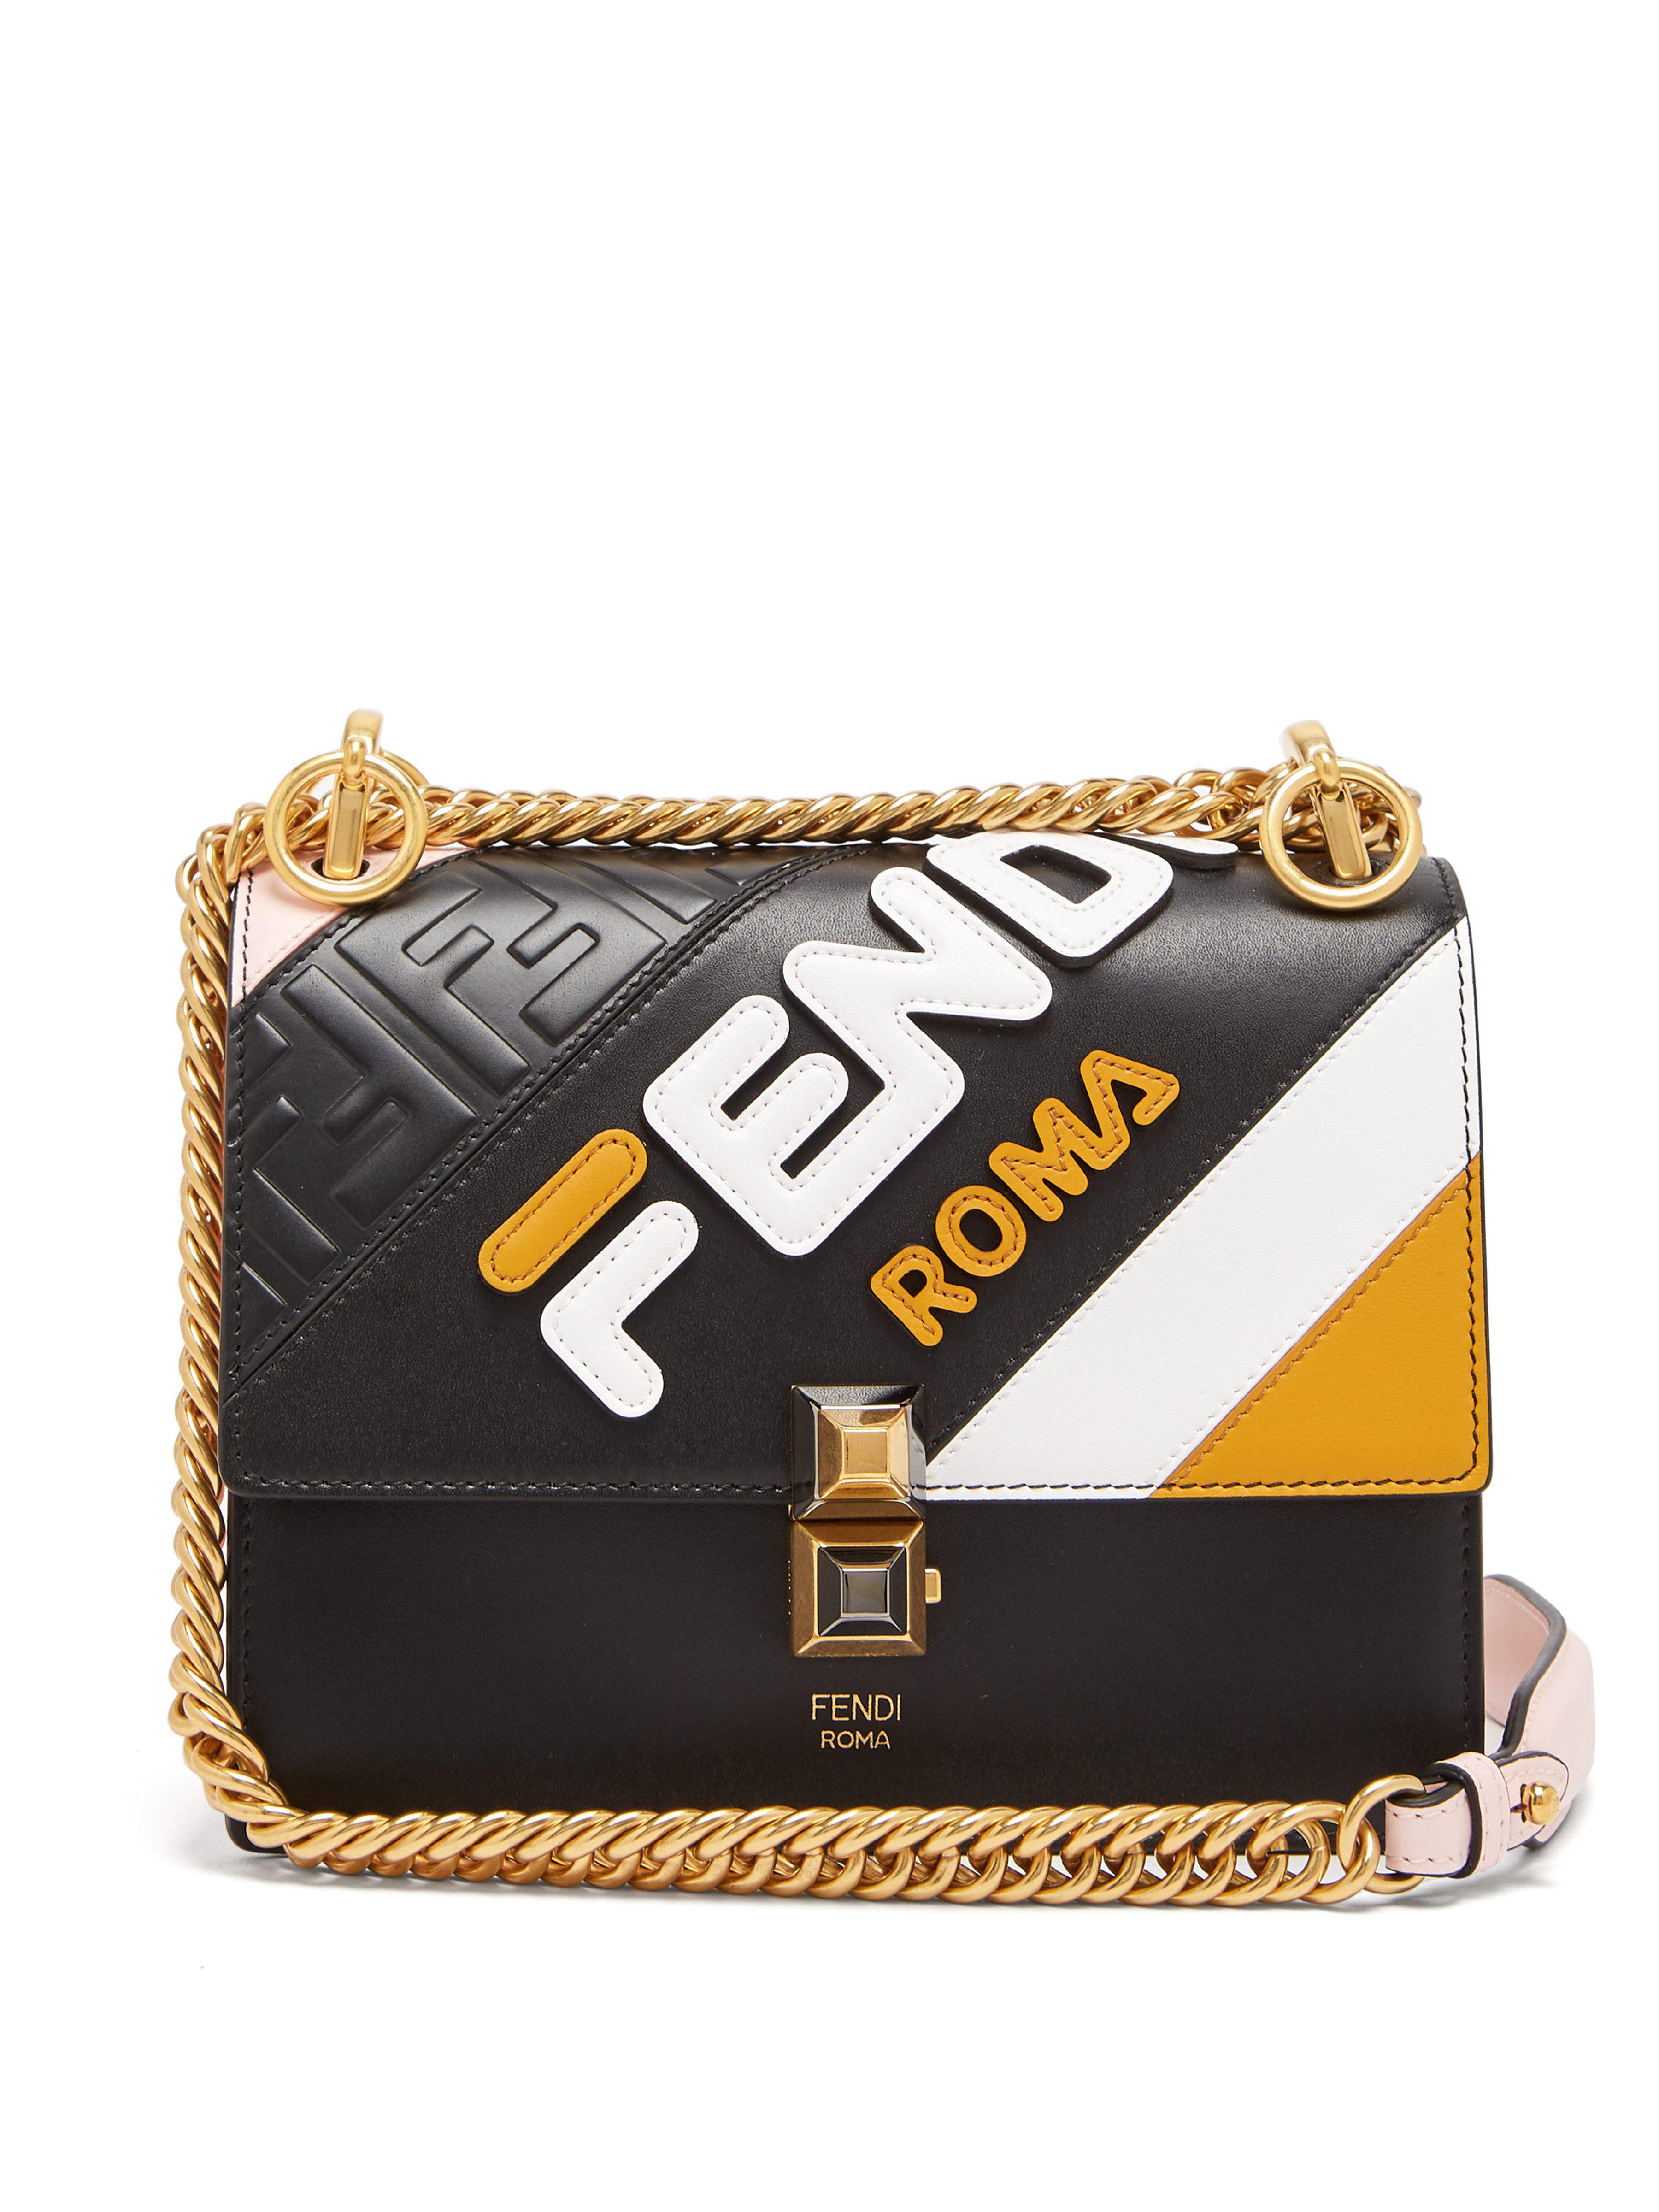 465491a60234 Fendi Mania Kan I Small Leather Cross Body Bag - Save 28% - Lyst